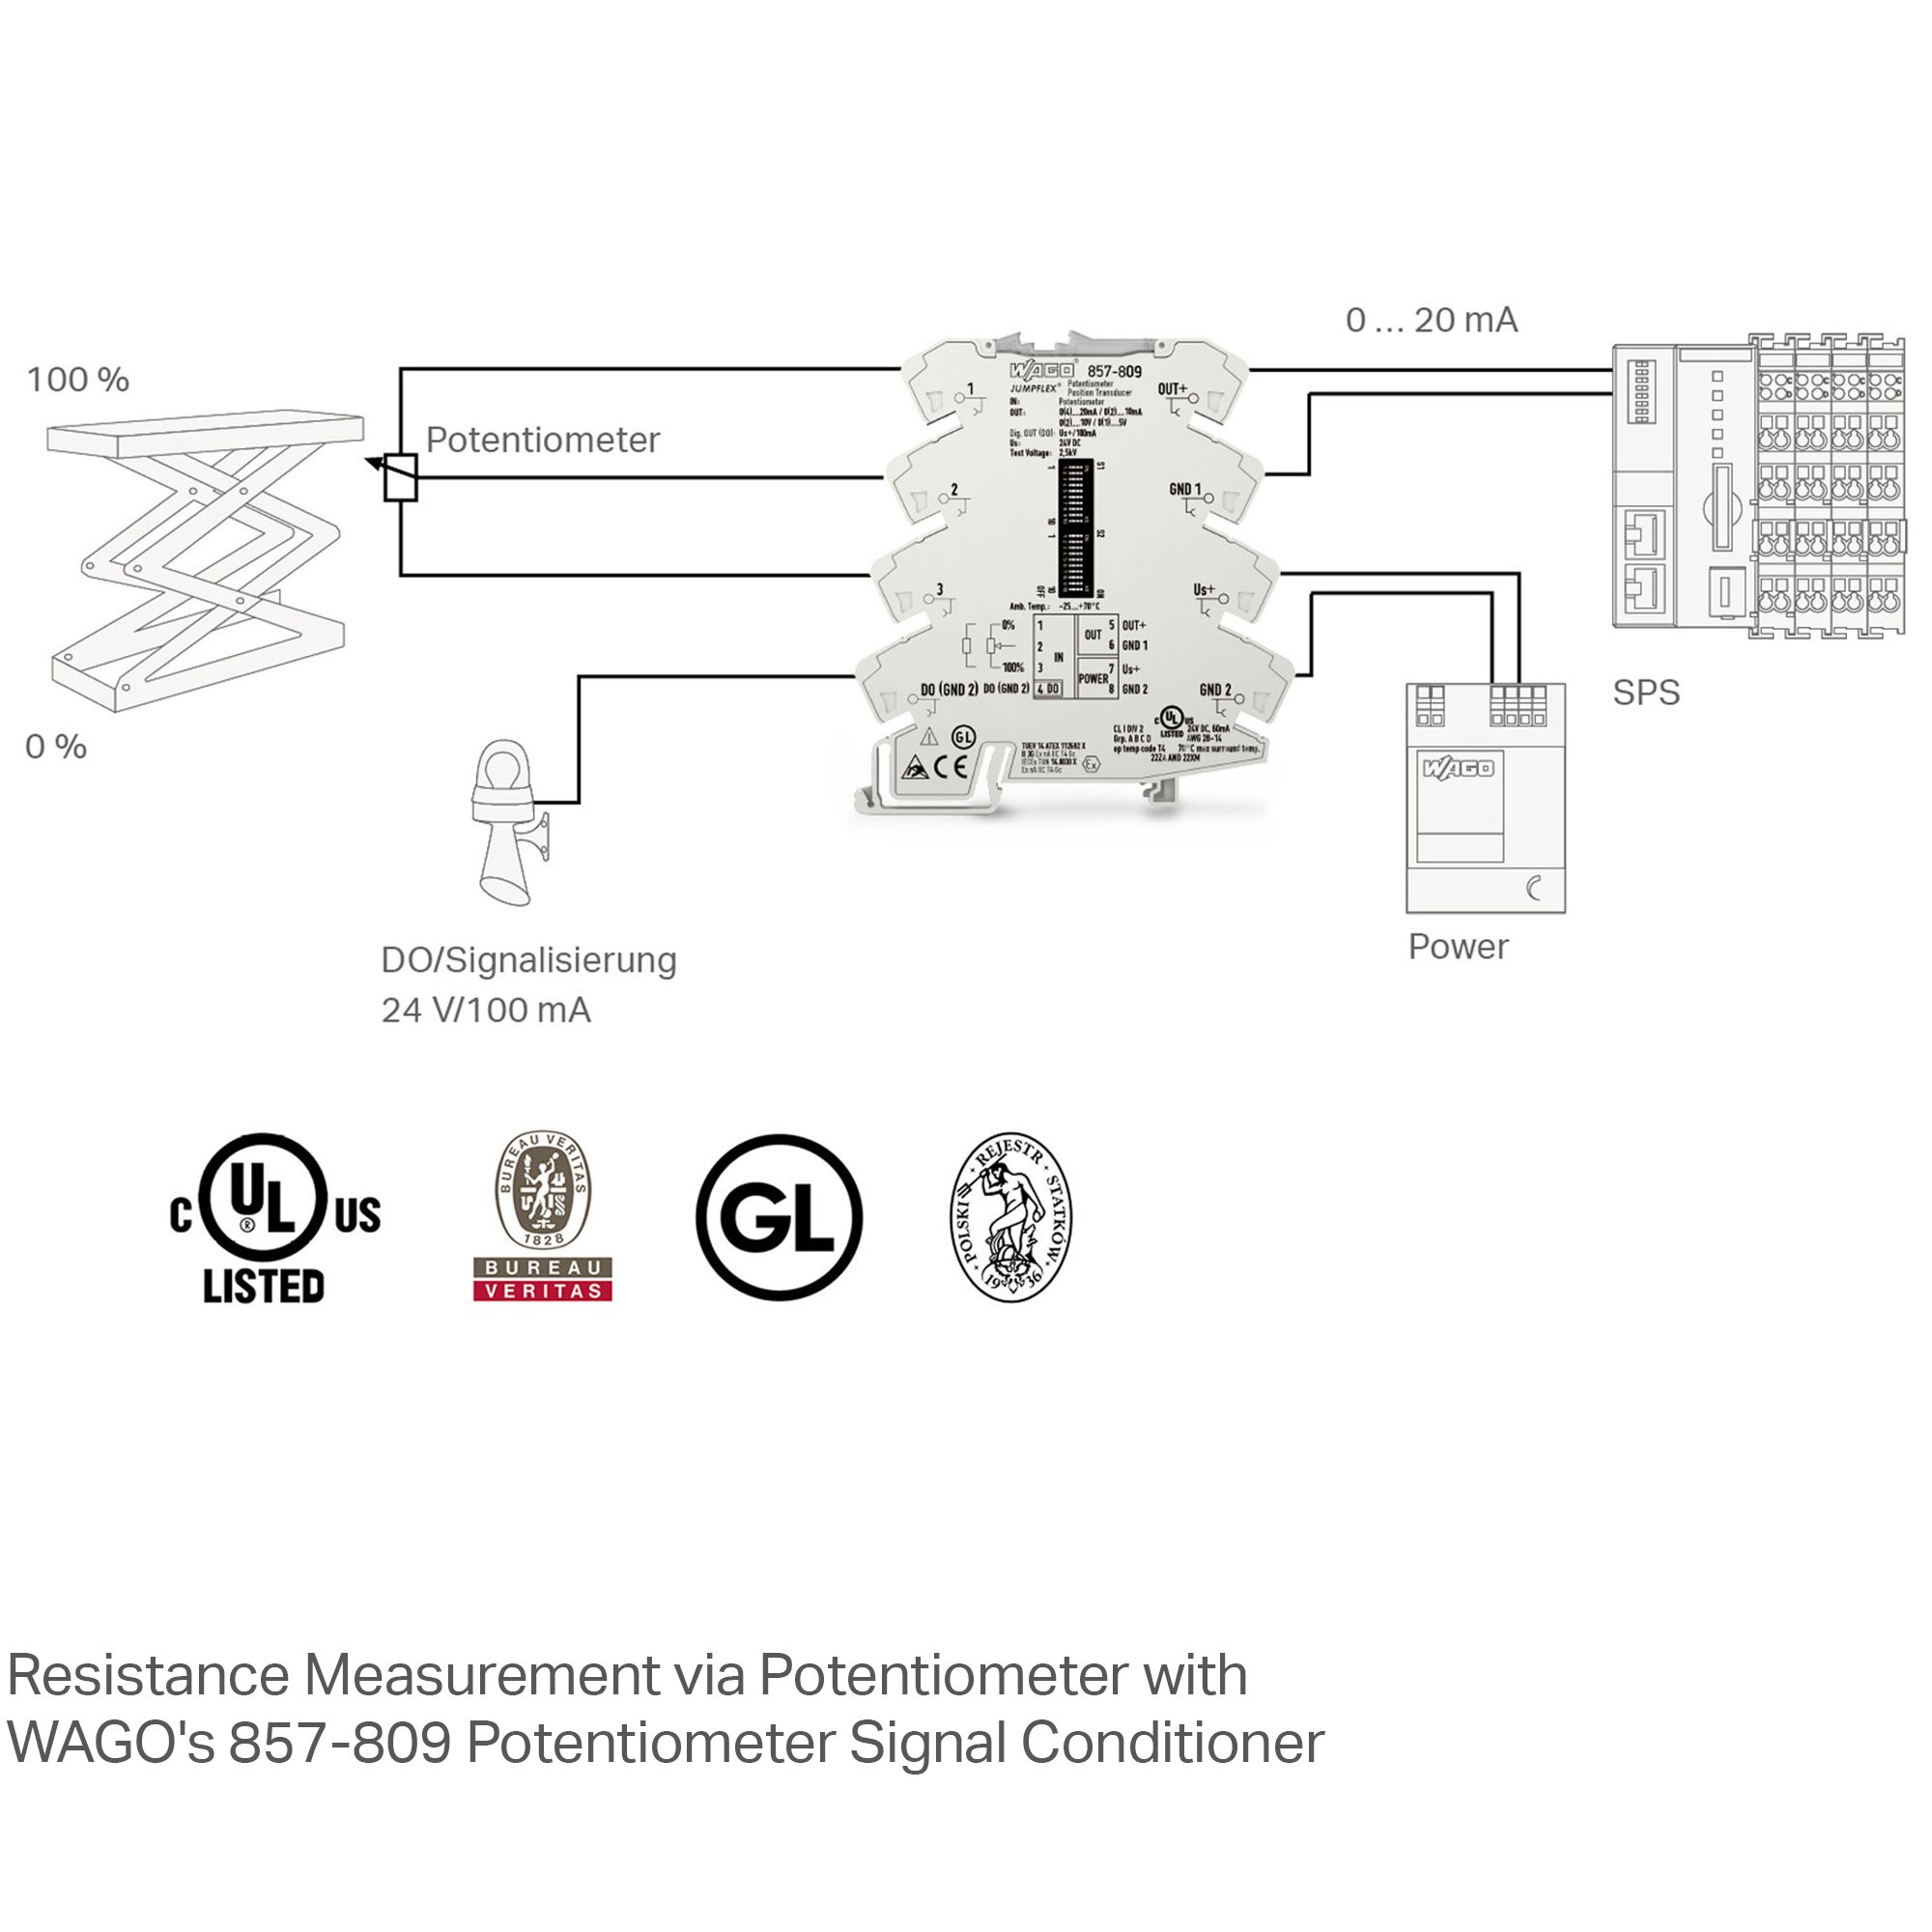 Wago Signal Conditioners And Isolation Amplifiers Secure Error Diagram Also Headset Lifier Test Circuit Simplified Schematic Potentiometer